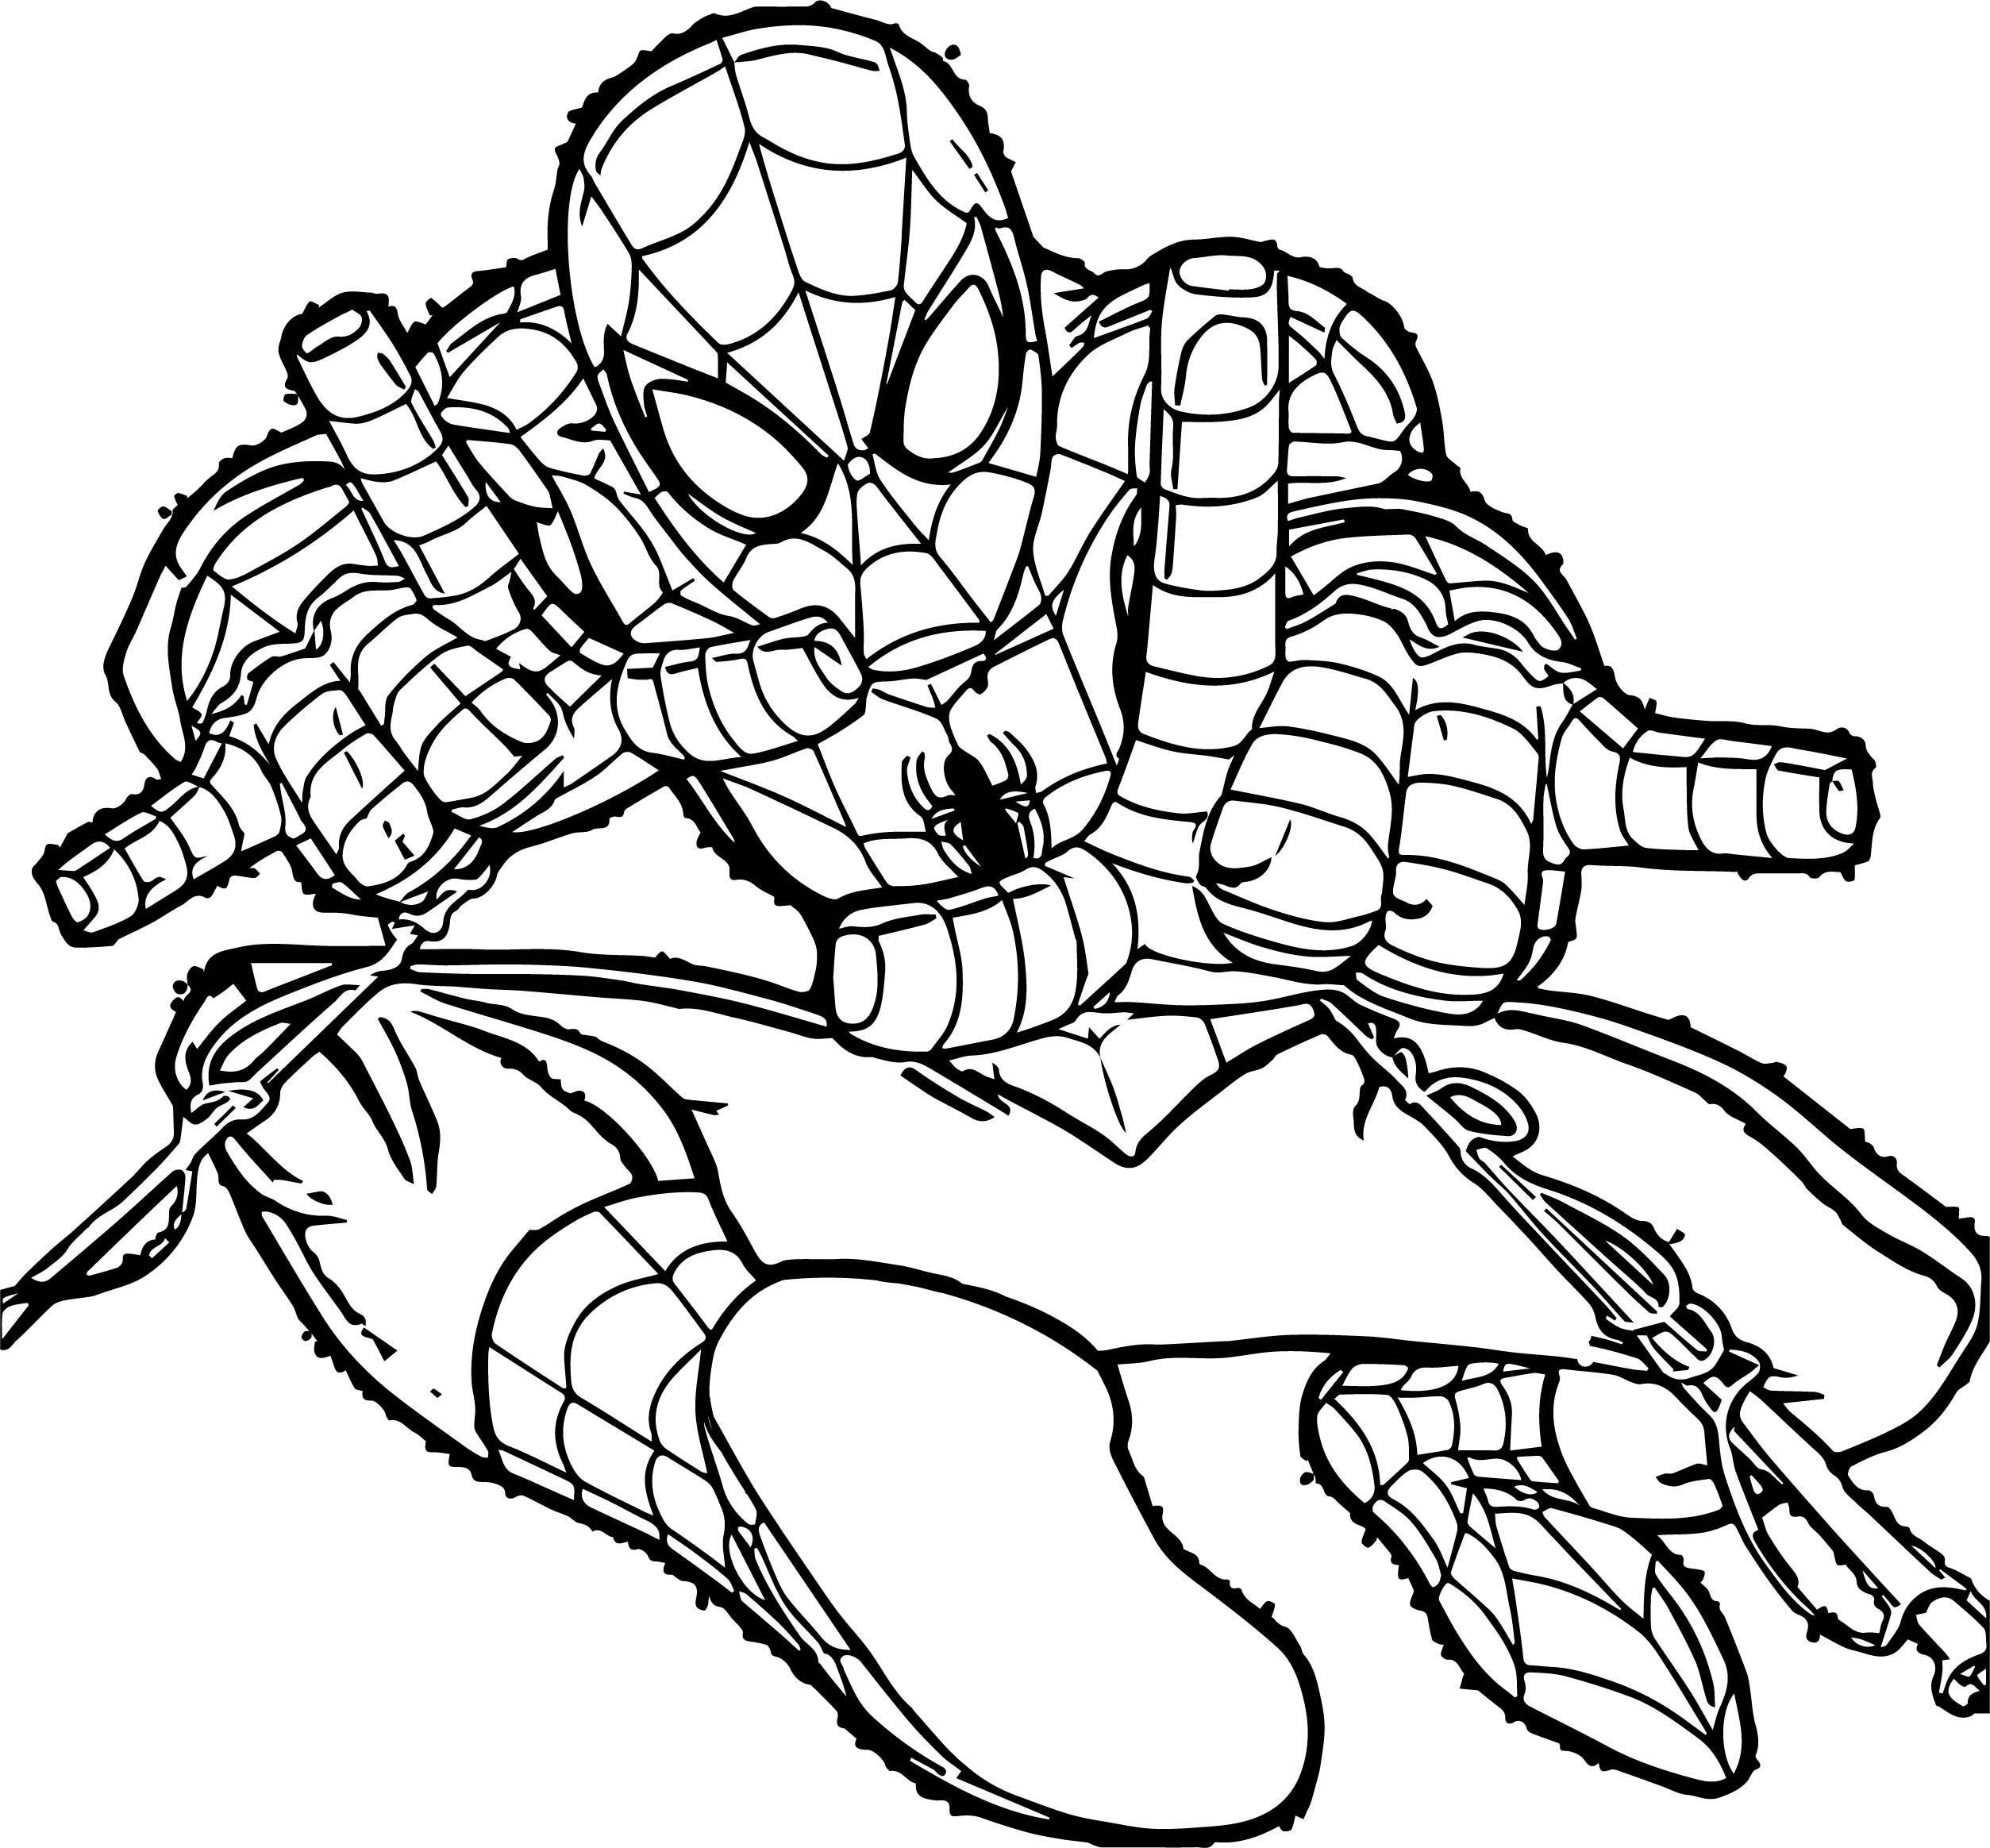 spider man color page - spiderman doublesling spider man coloring page